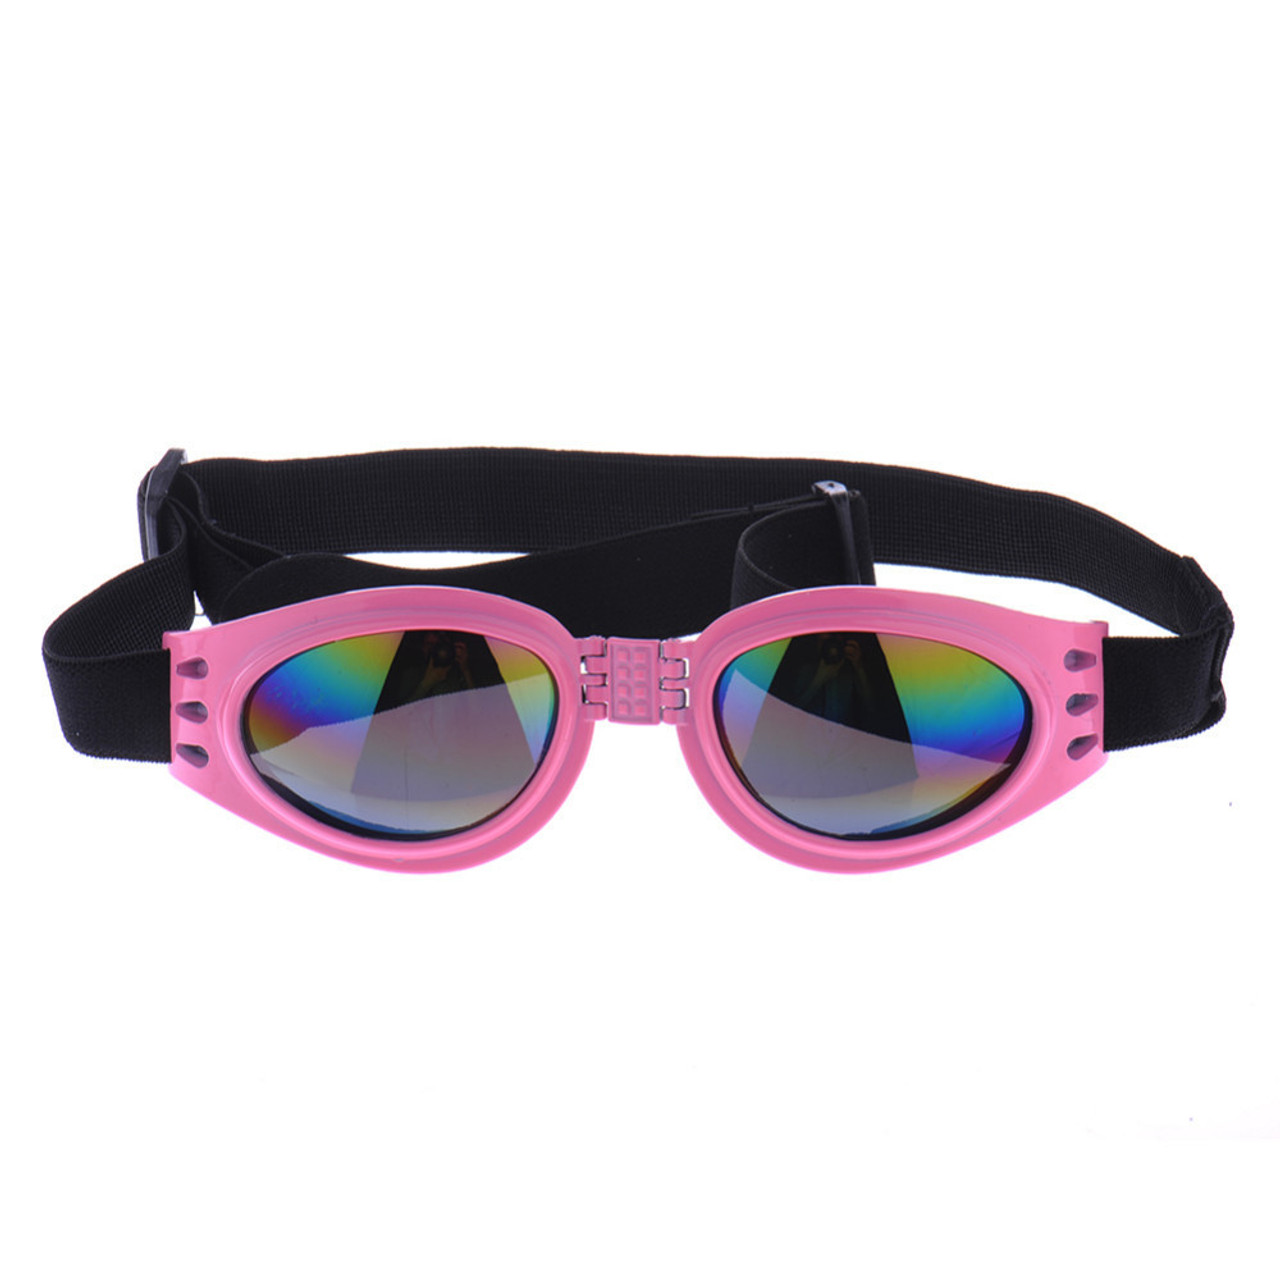 24a4b345c8c4d Pink Pet eyewear waterproof Dog Protection Goggles UV Sunglasses